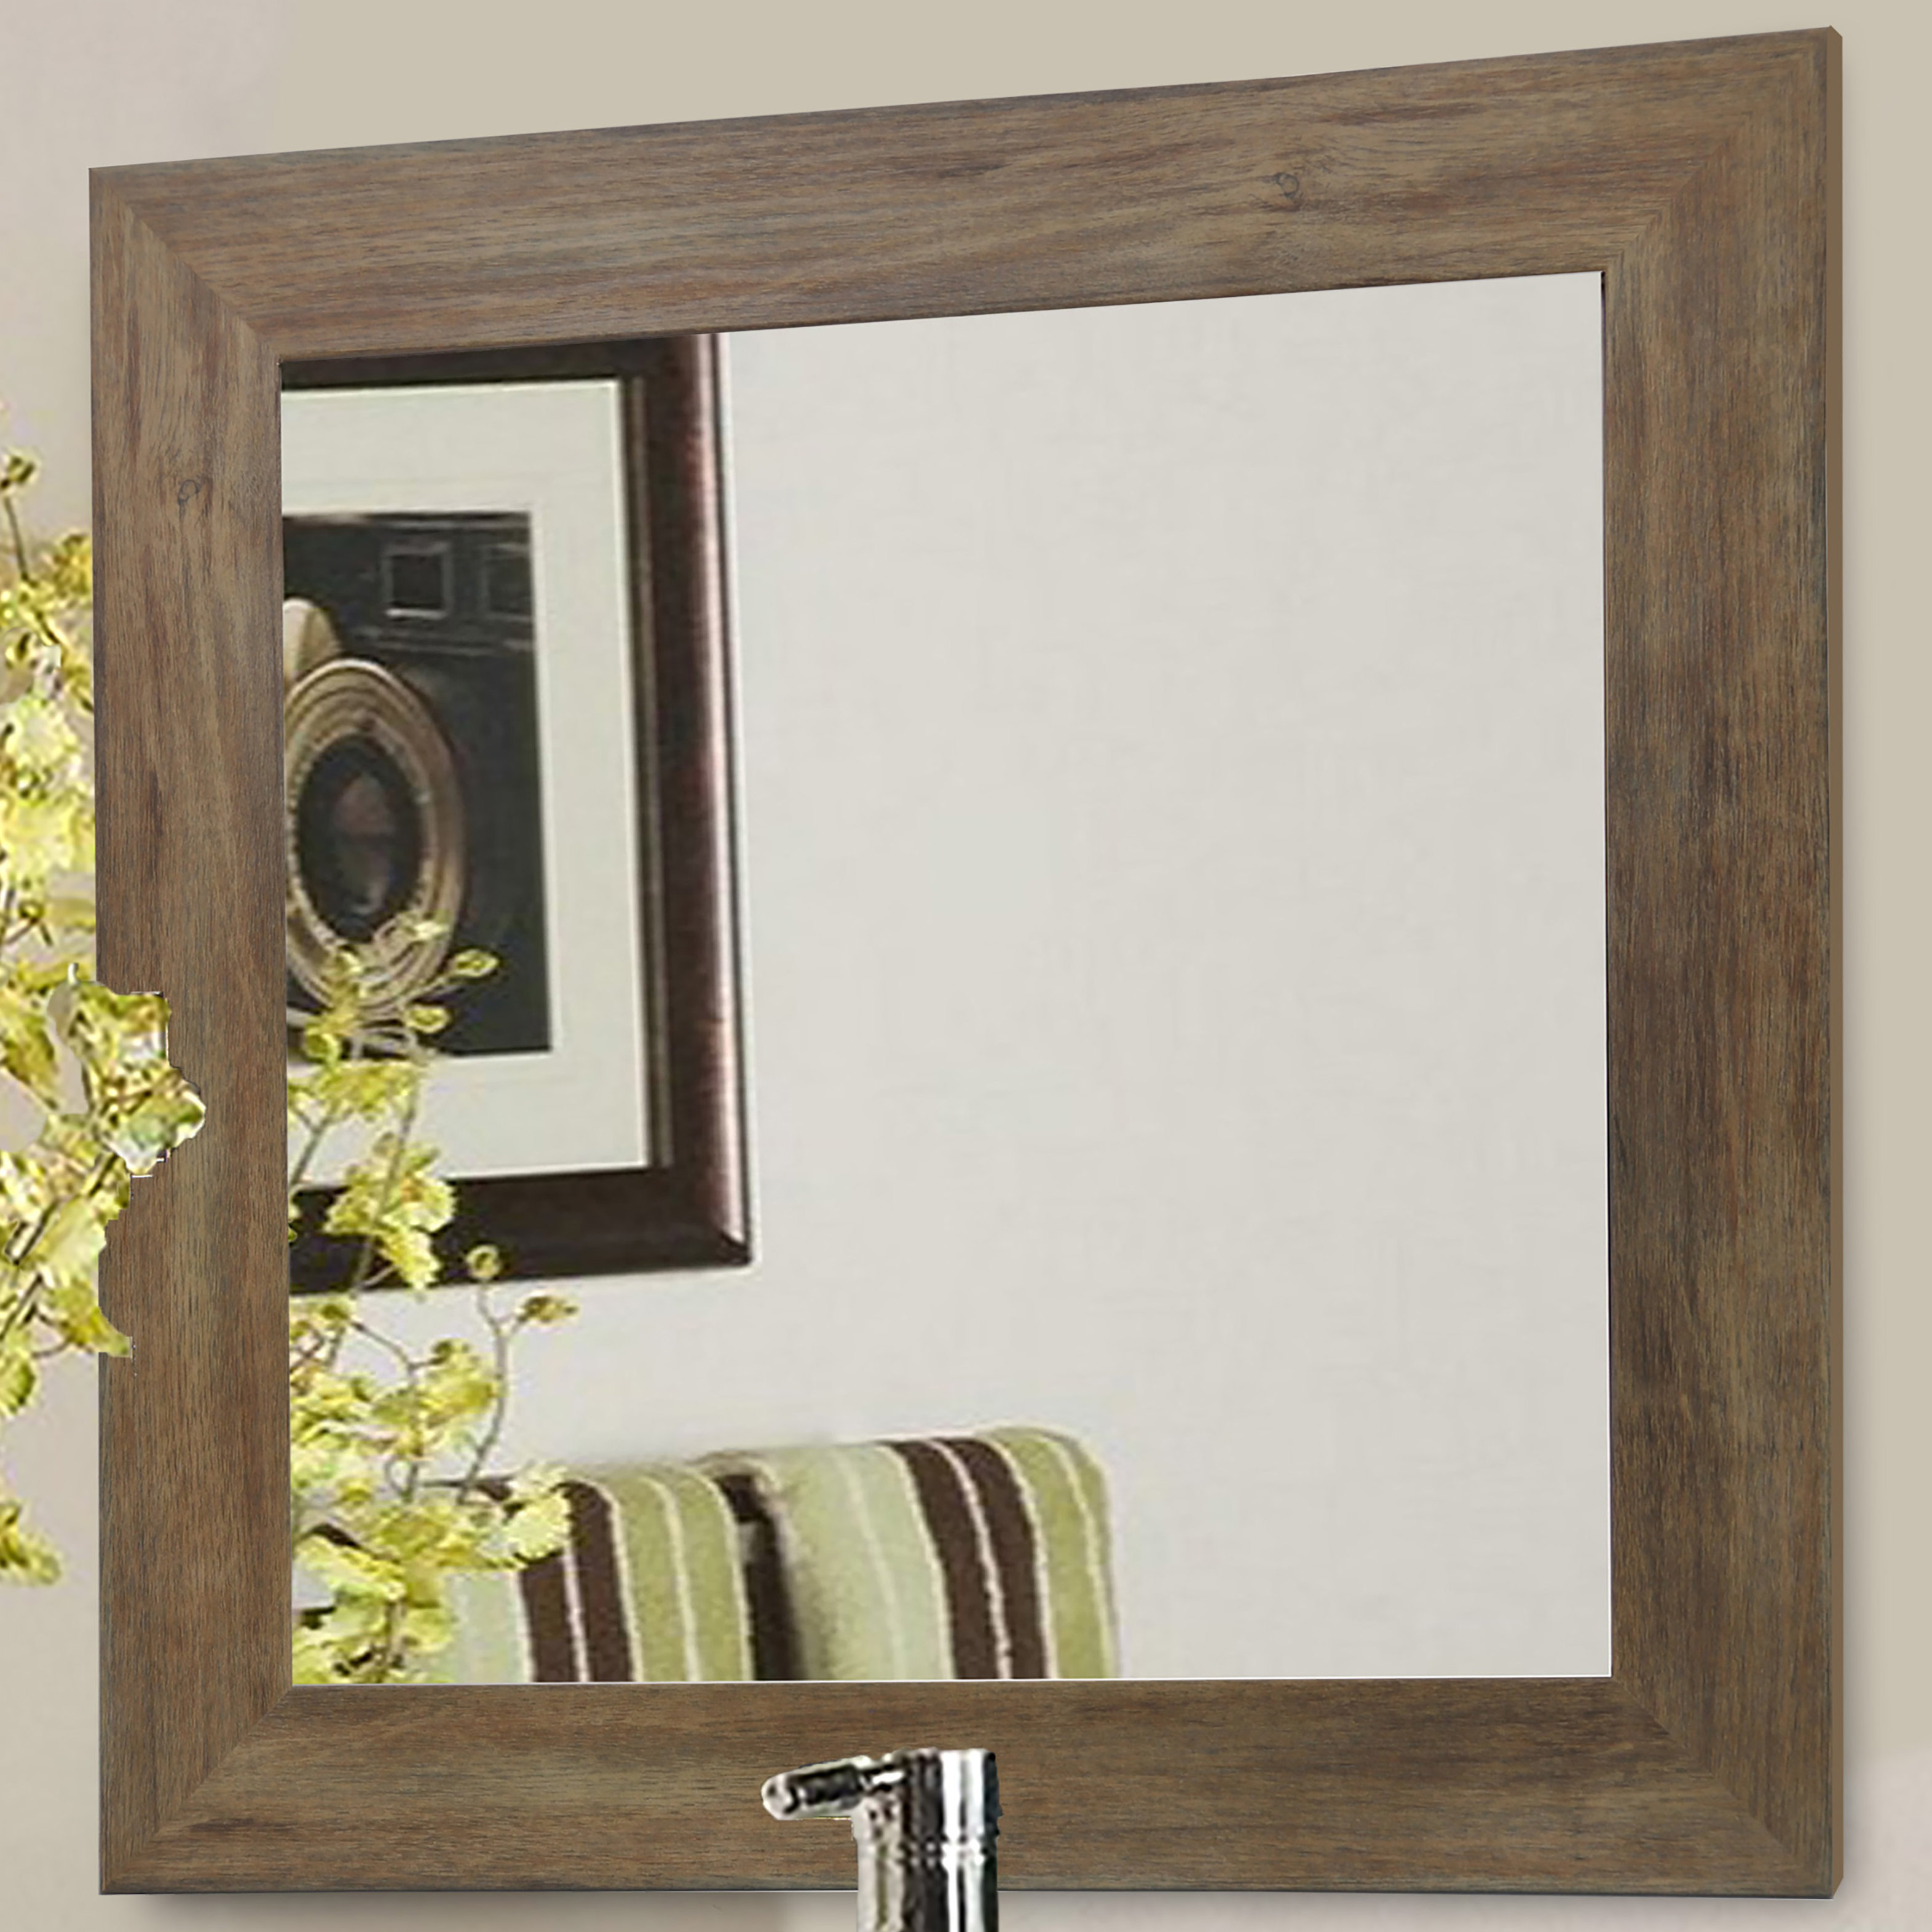 Abhay Traditional Beveled Wall Mirror For Traditional Beveled Wall Mirrors (View 16 of 20)